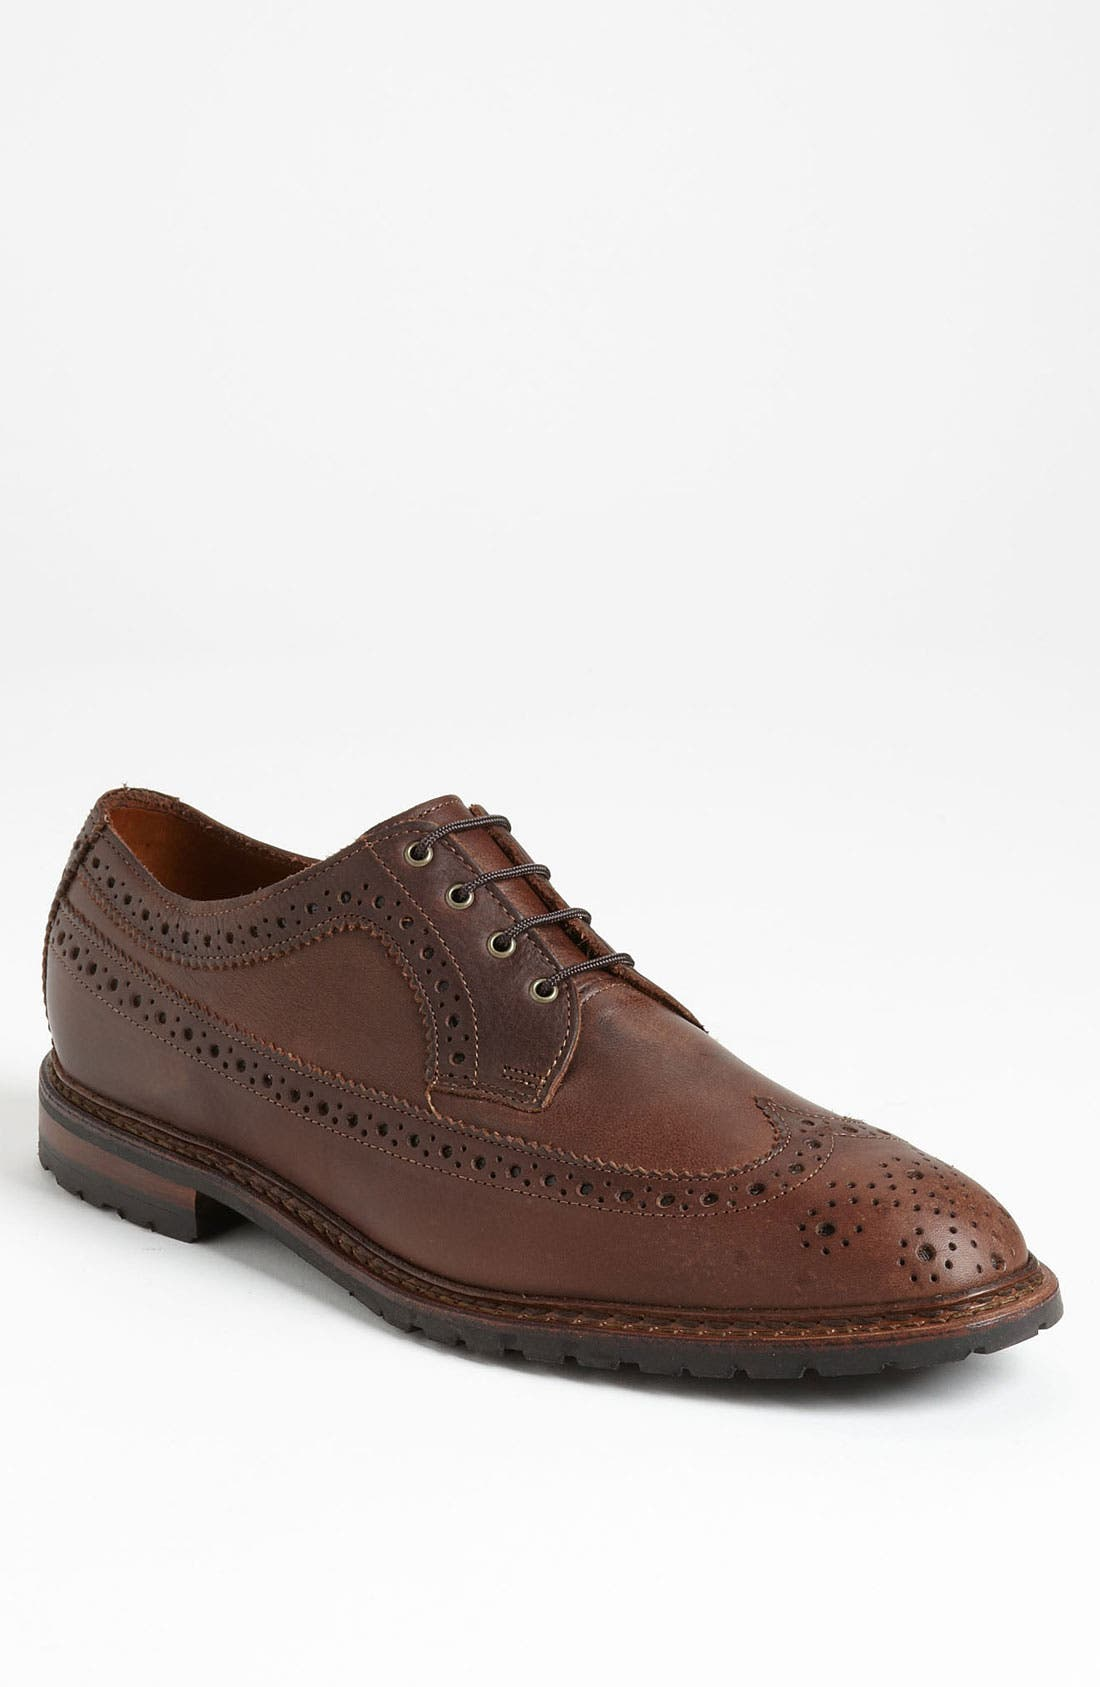 Main Image - Allen Edmonds 'Aberdeen' Longwing Derby